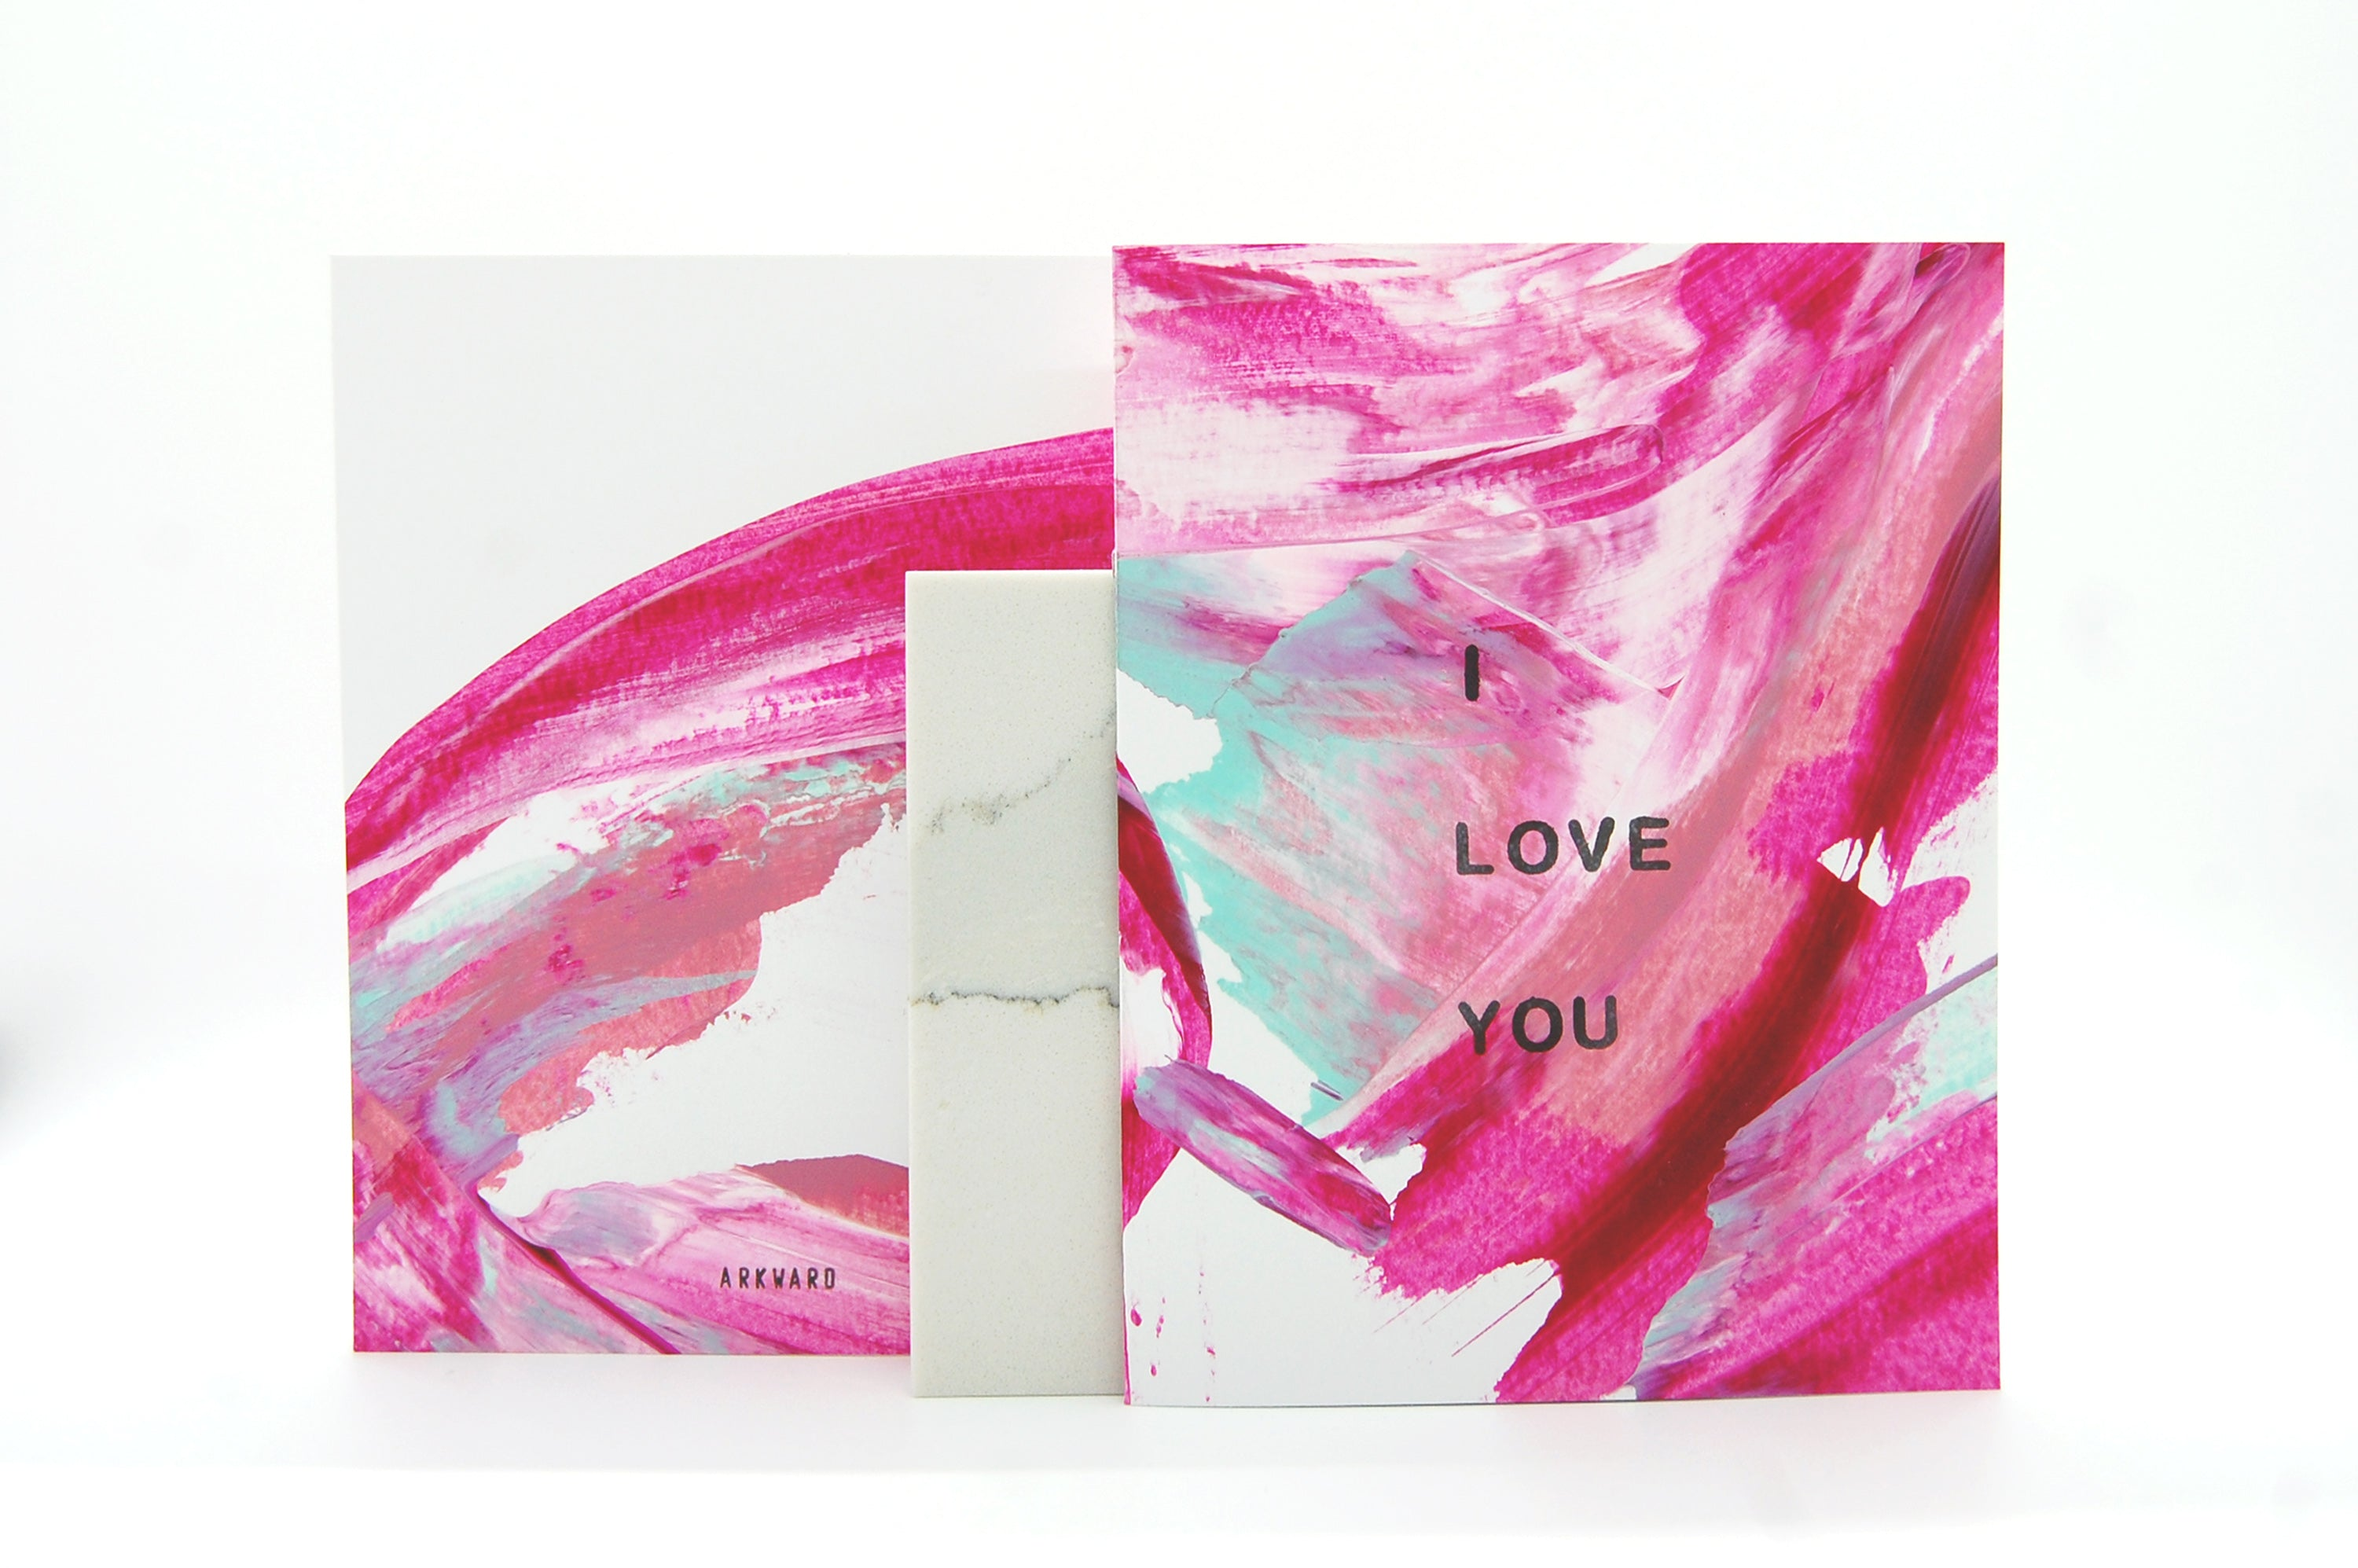 Arkward_I Love You_Stationery_Greeting cards